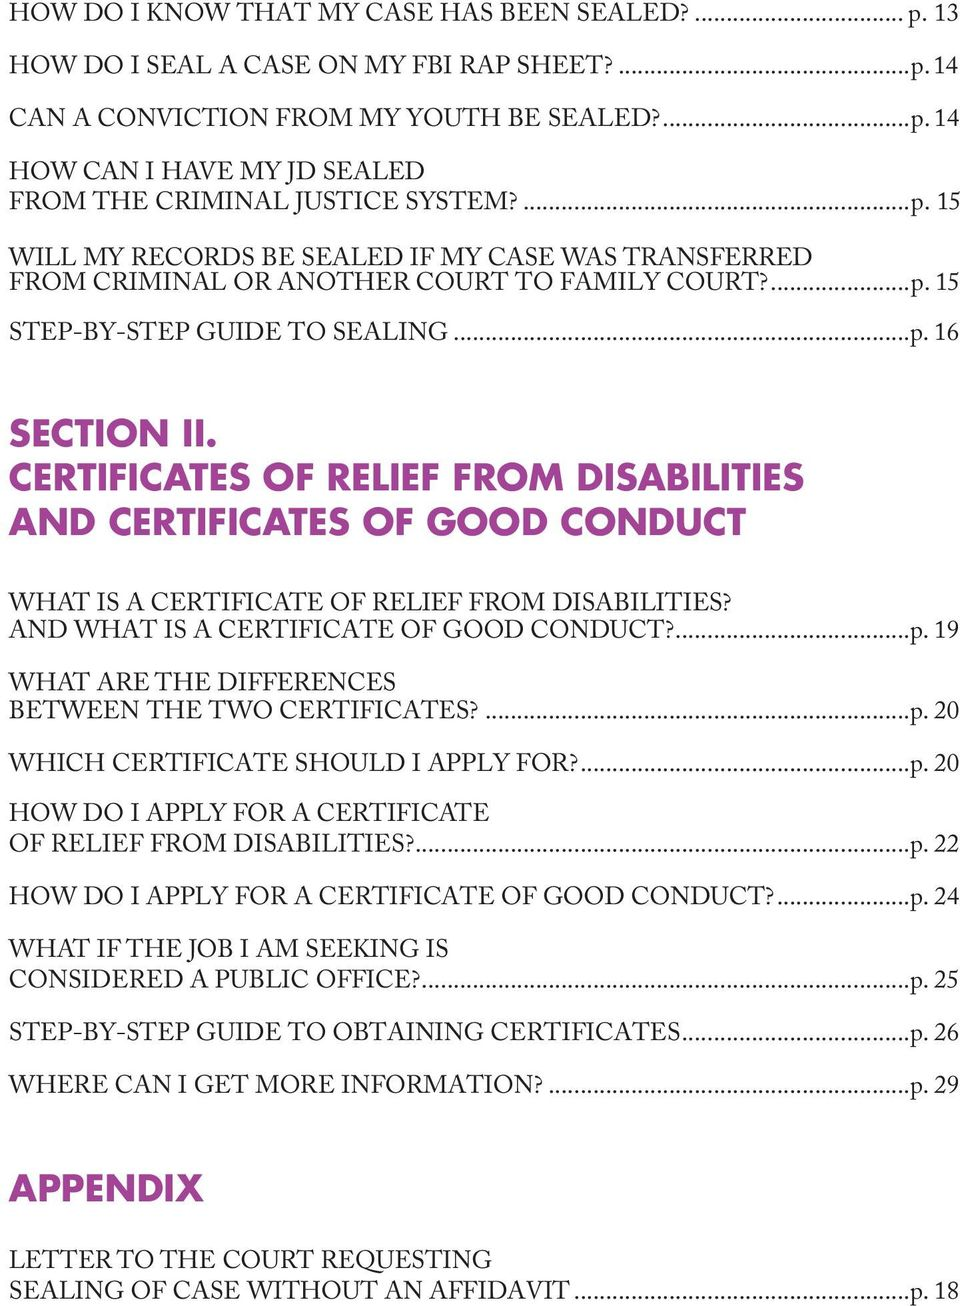 CERTIFICATES OF RELIEF FROM DISABILITIES AND CERTIFICATES OF GOOD CONDUCT WHAT IS A CERTIFICATE OF RELIEF FROM DISABILITIES? AND WHAT IS A CERTIFICATE OF GOOD CONDUCT?...p.